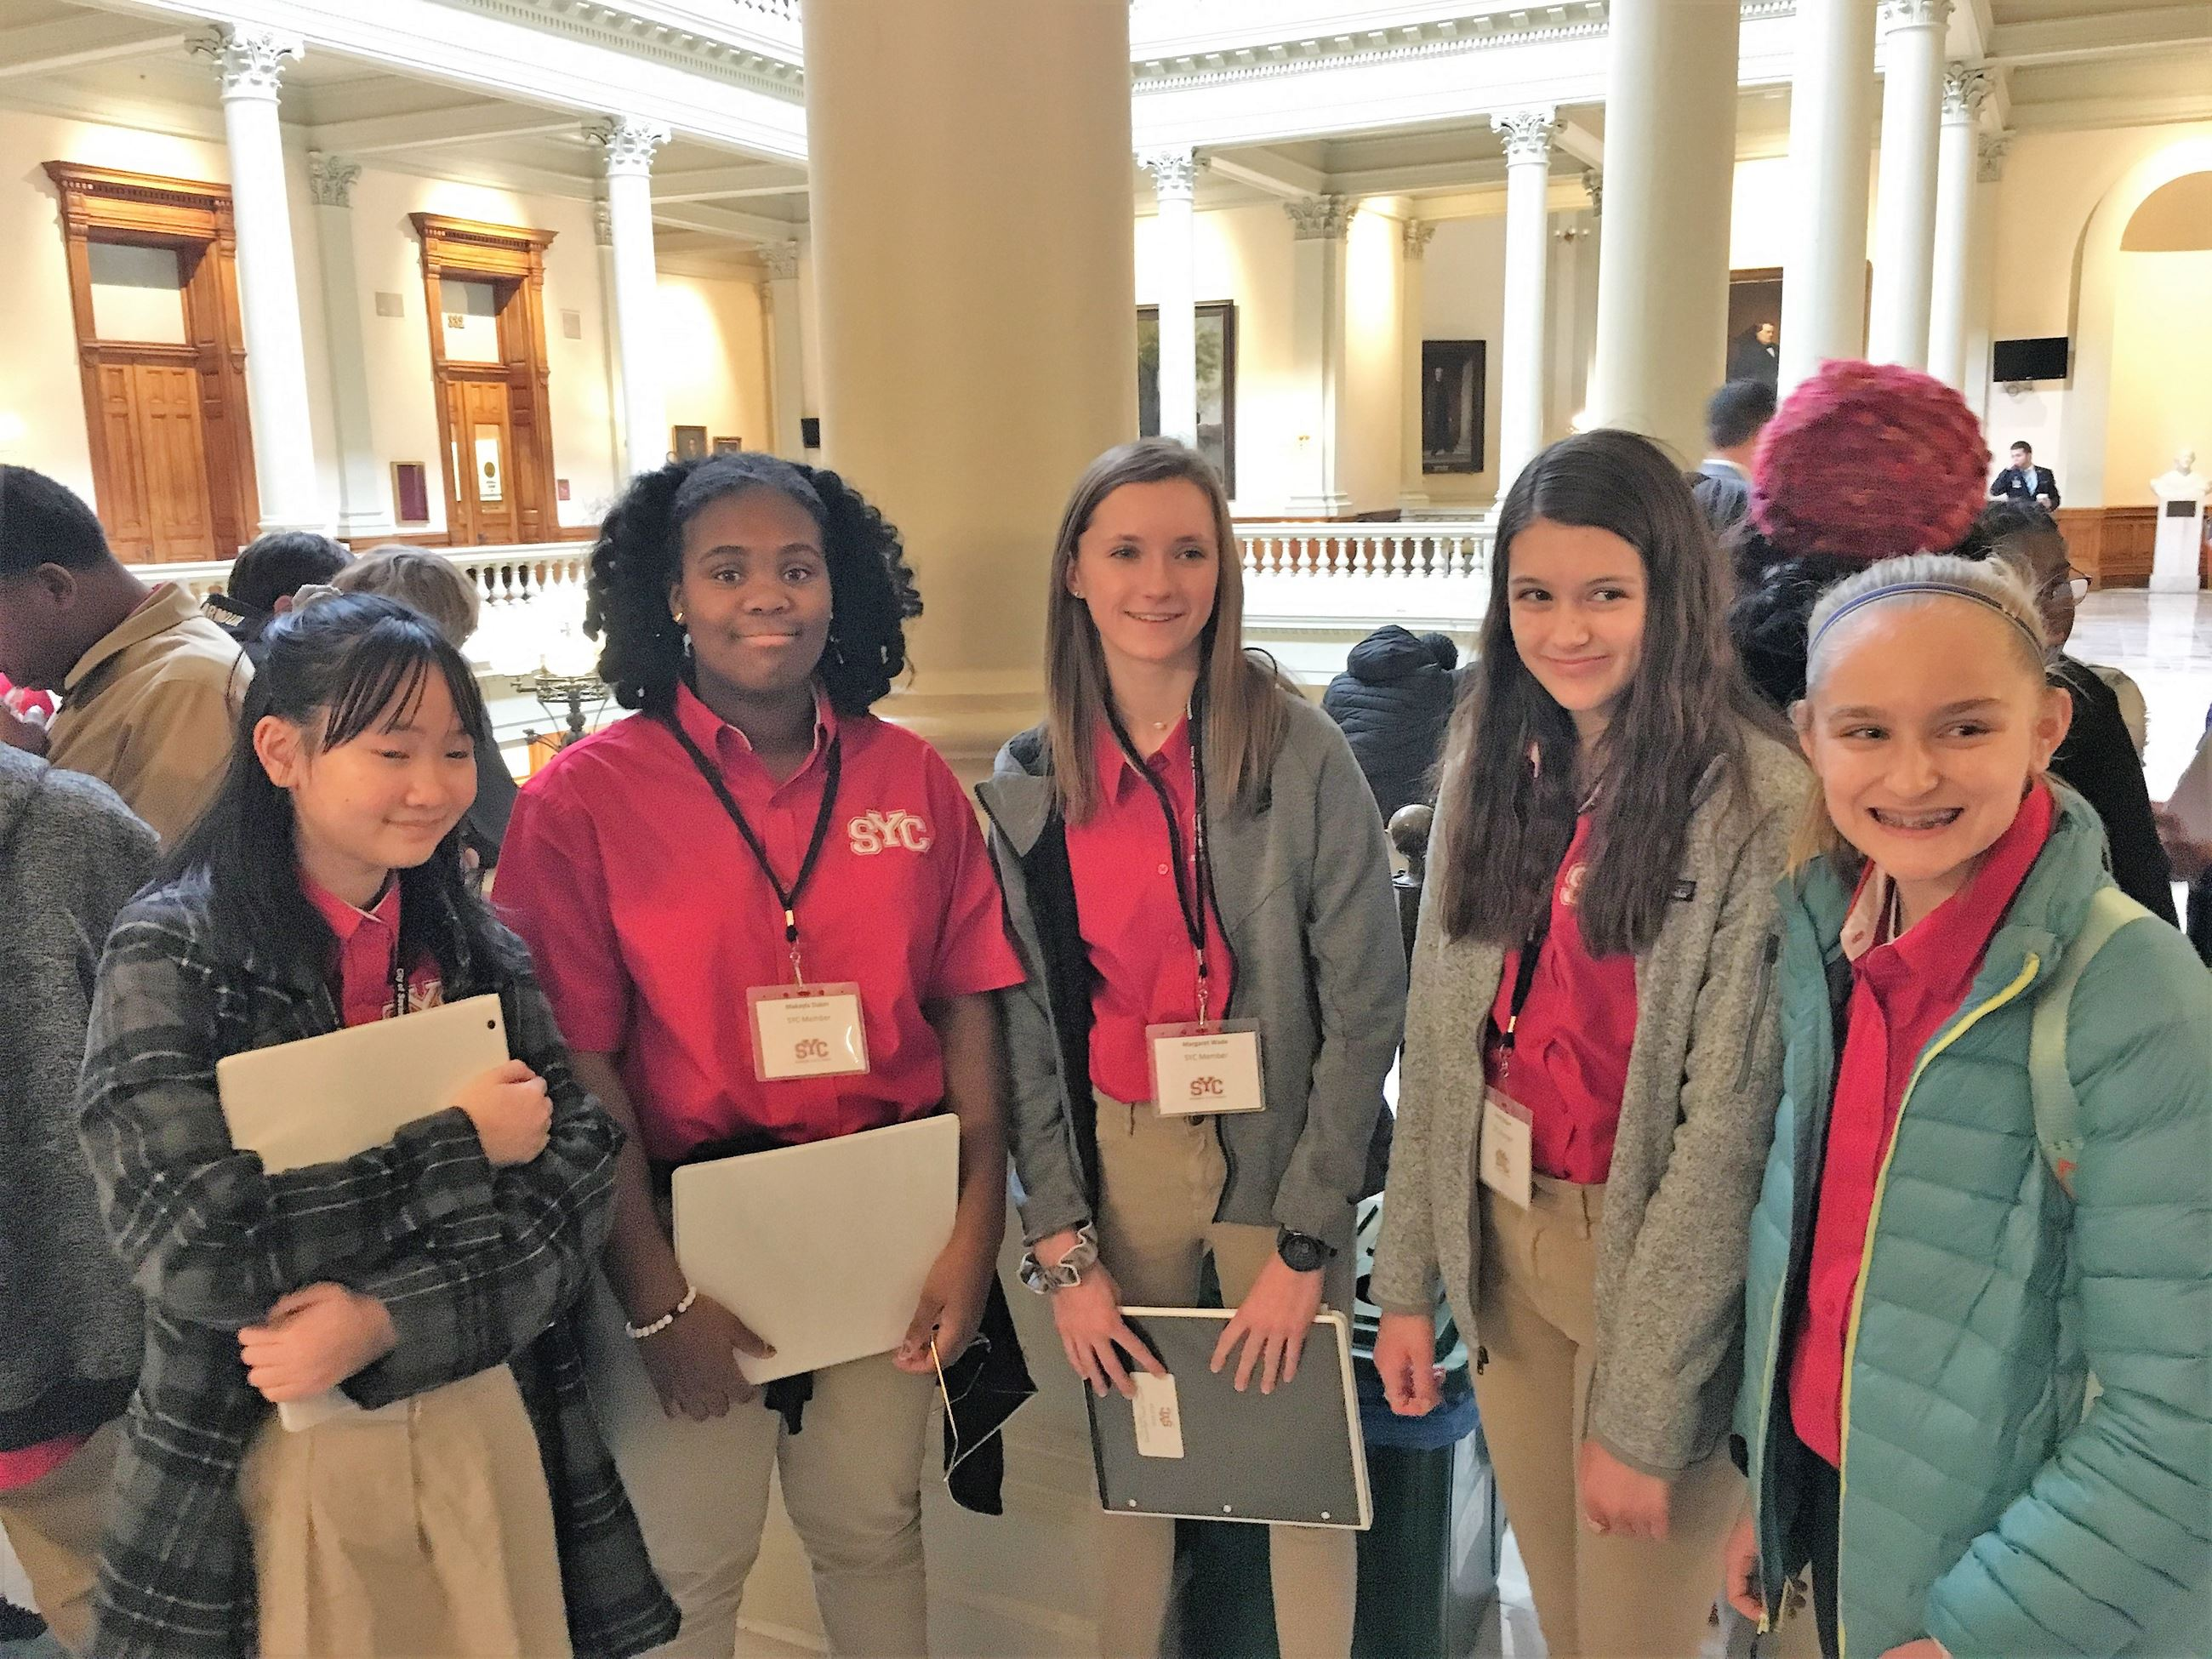 Touring the Georgia State Capitol